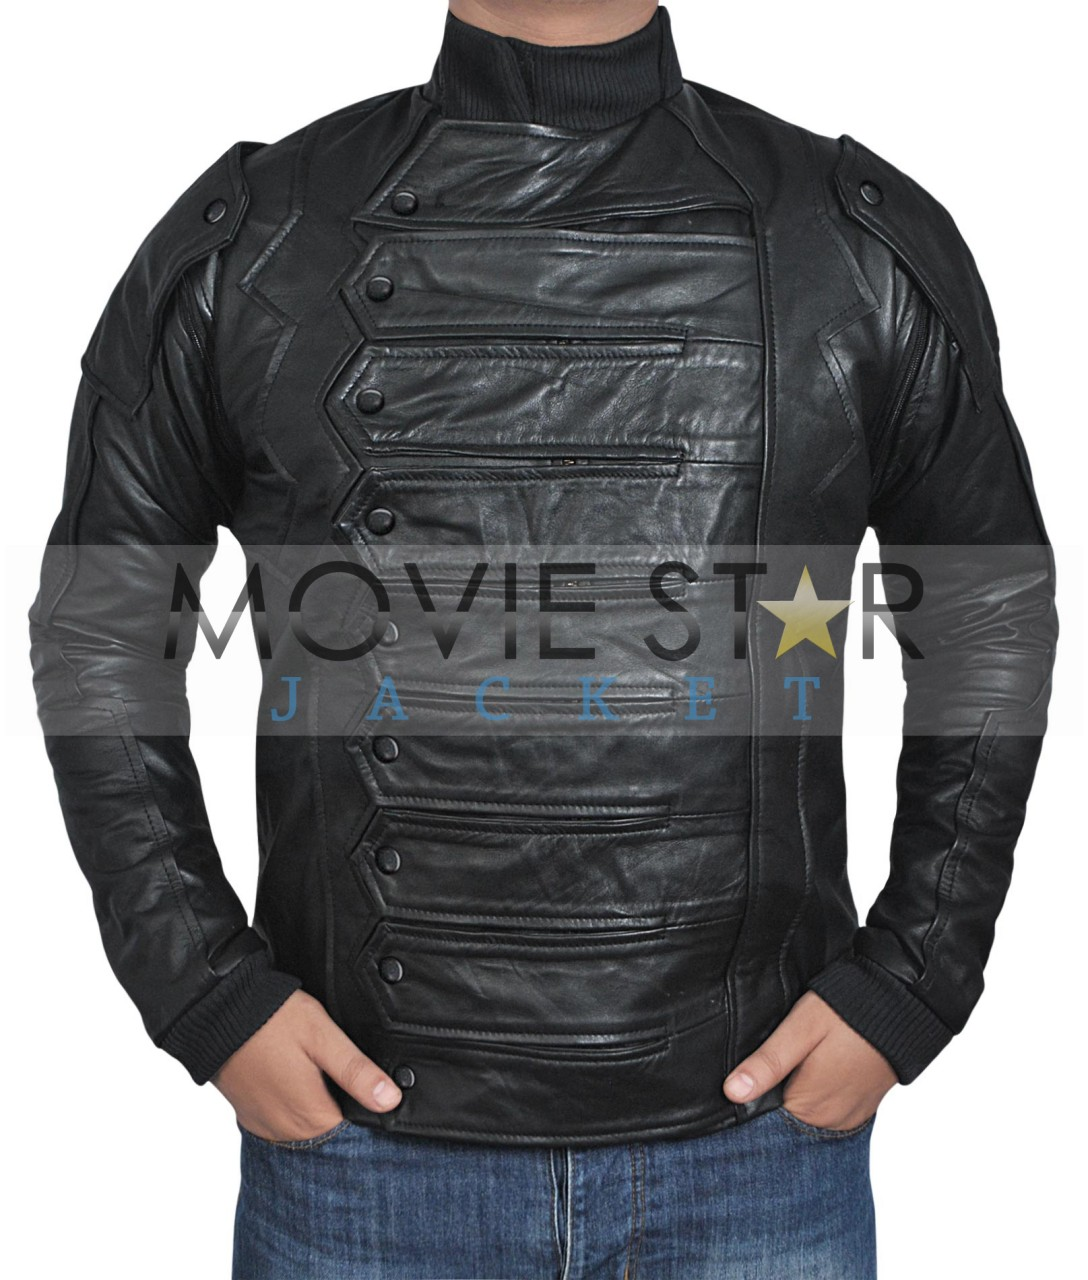 movies-sebastian-stan-captain-america-winter-soldier-vest.jpg